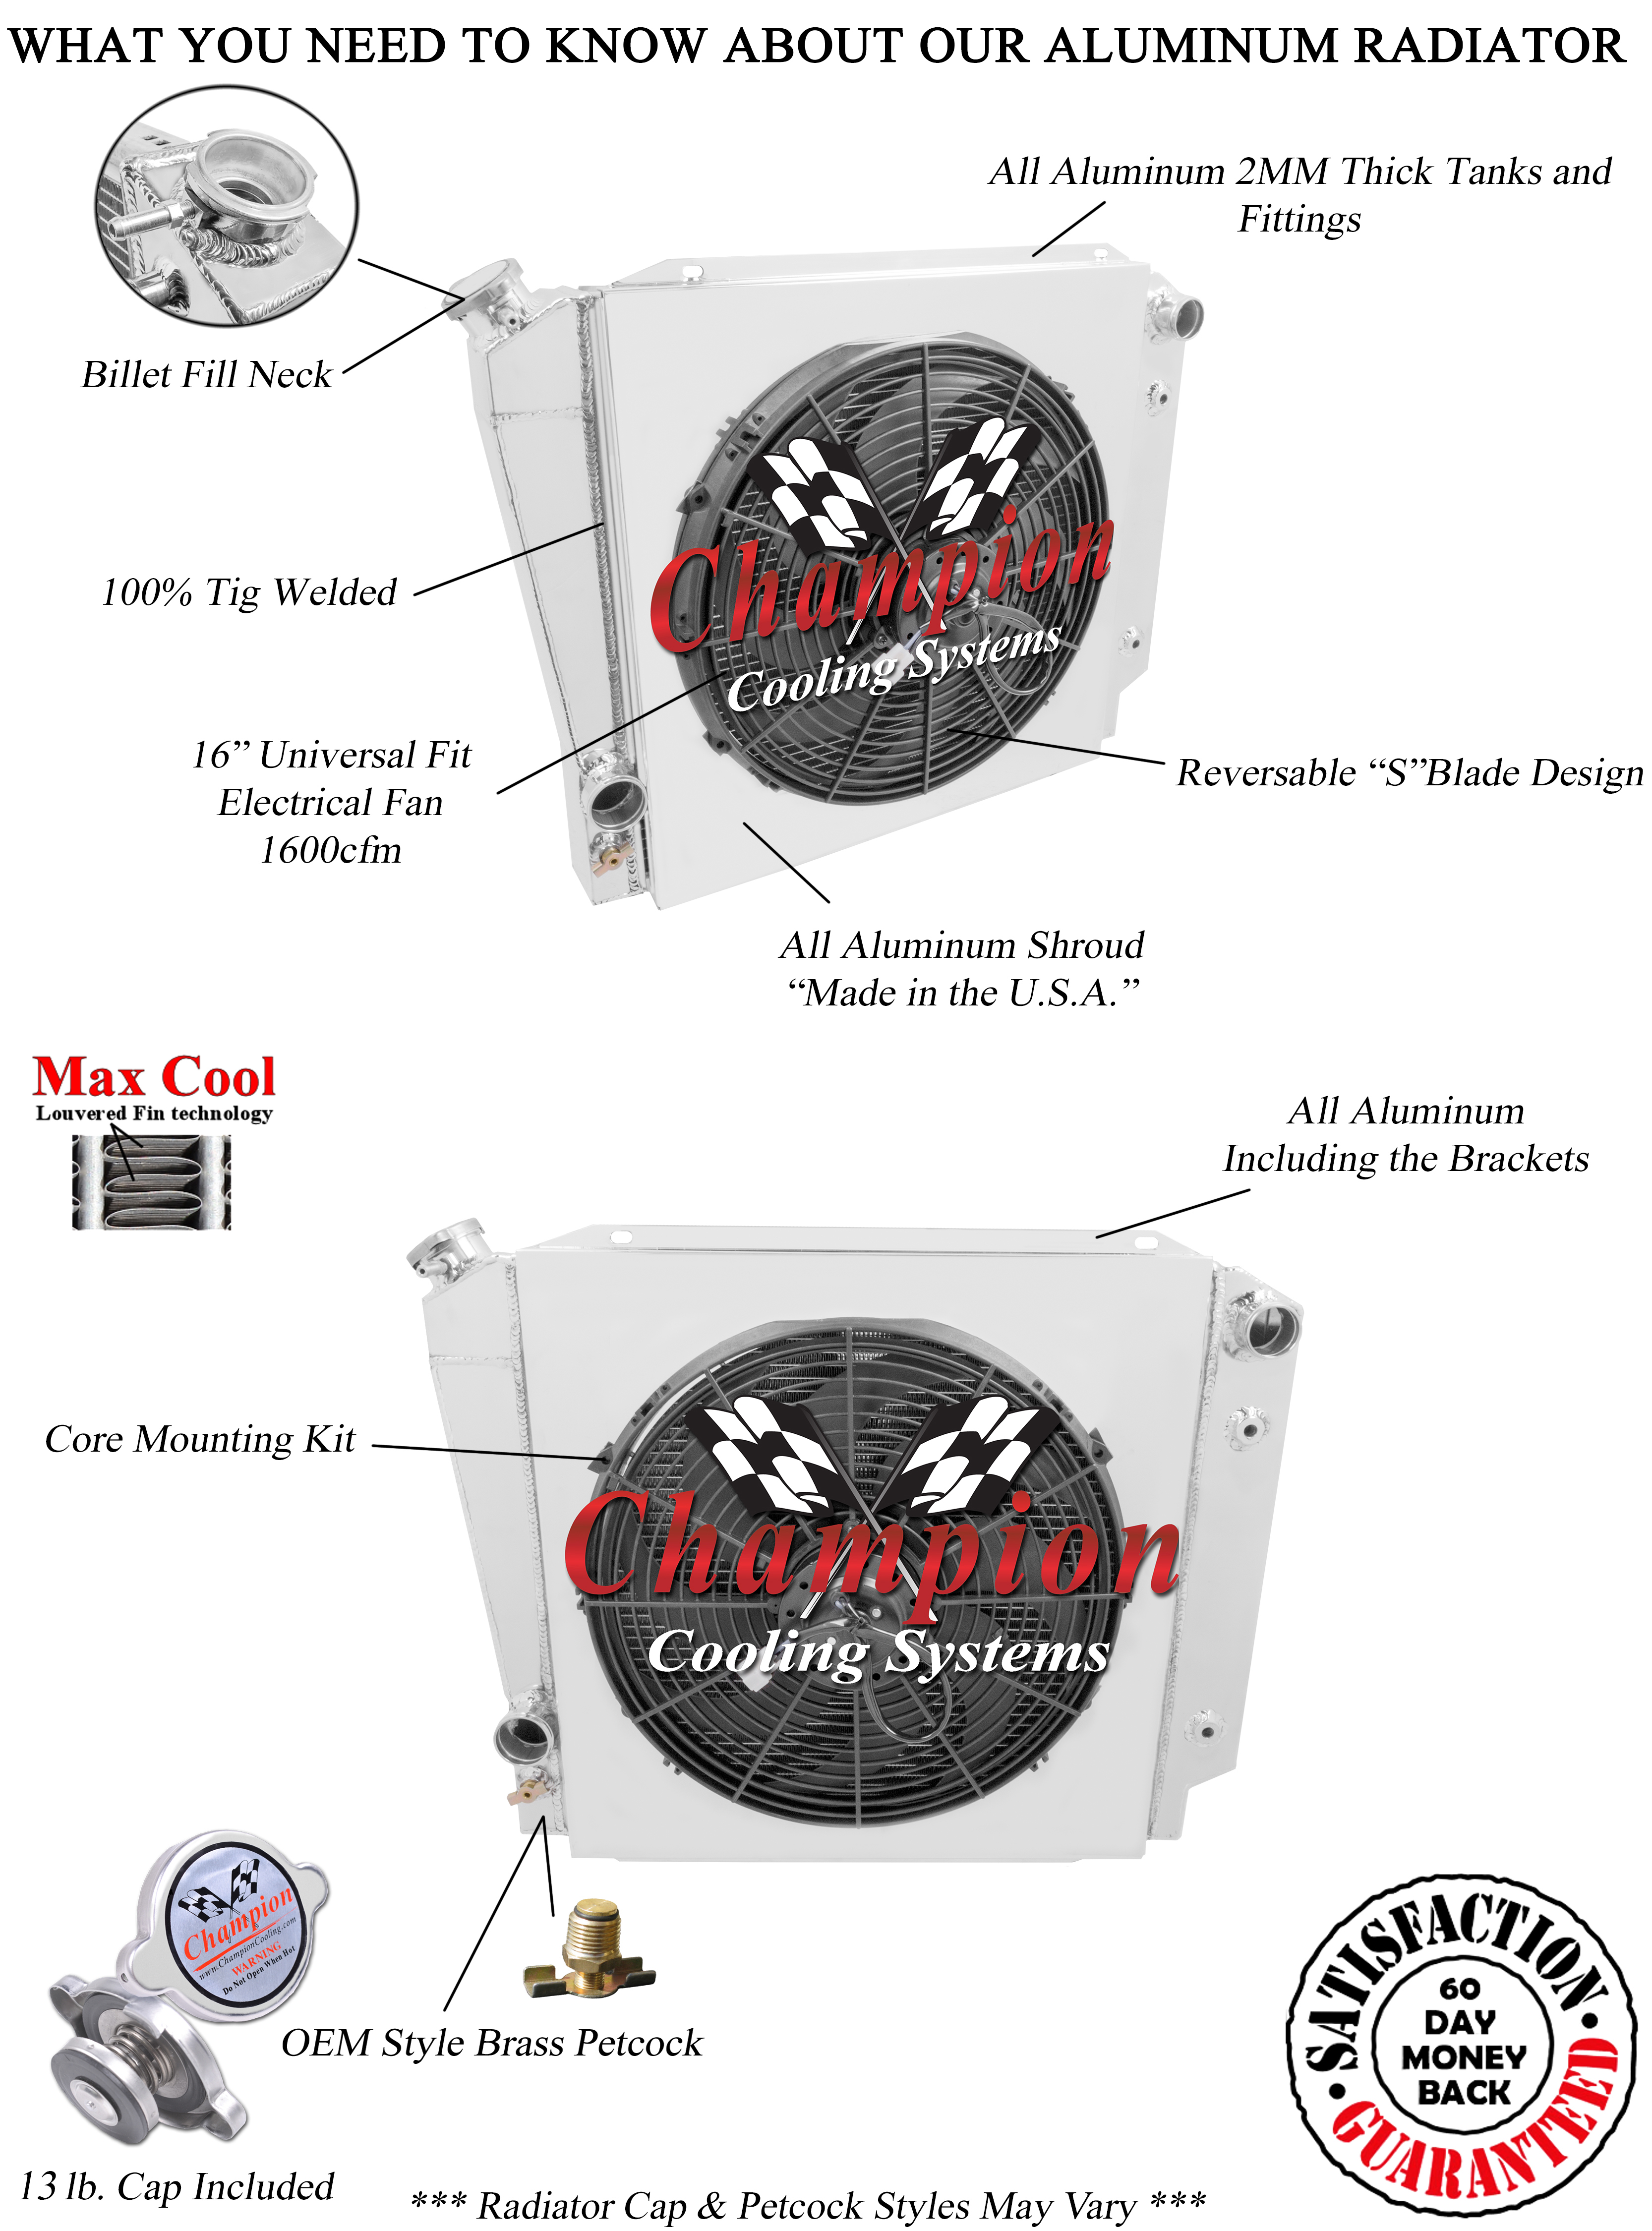 https://www.championcooling.com/photos/Photos%20White/With%20Fans/W-Shroud/522/FS522_white_Diagram_Champion.jpg